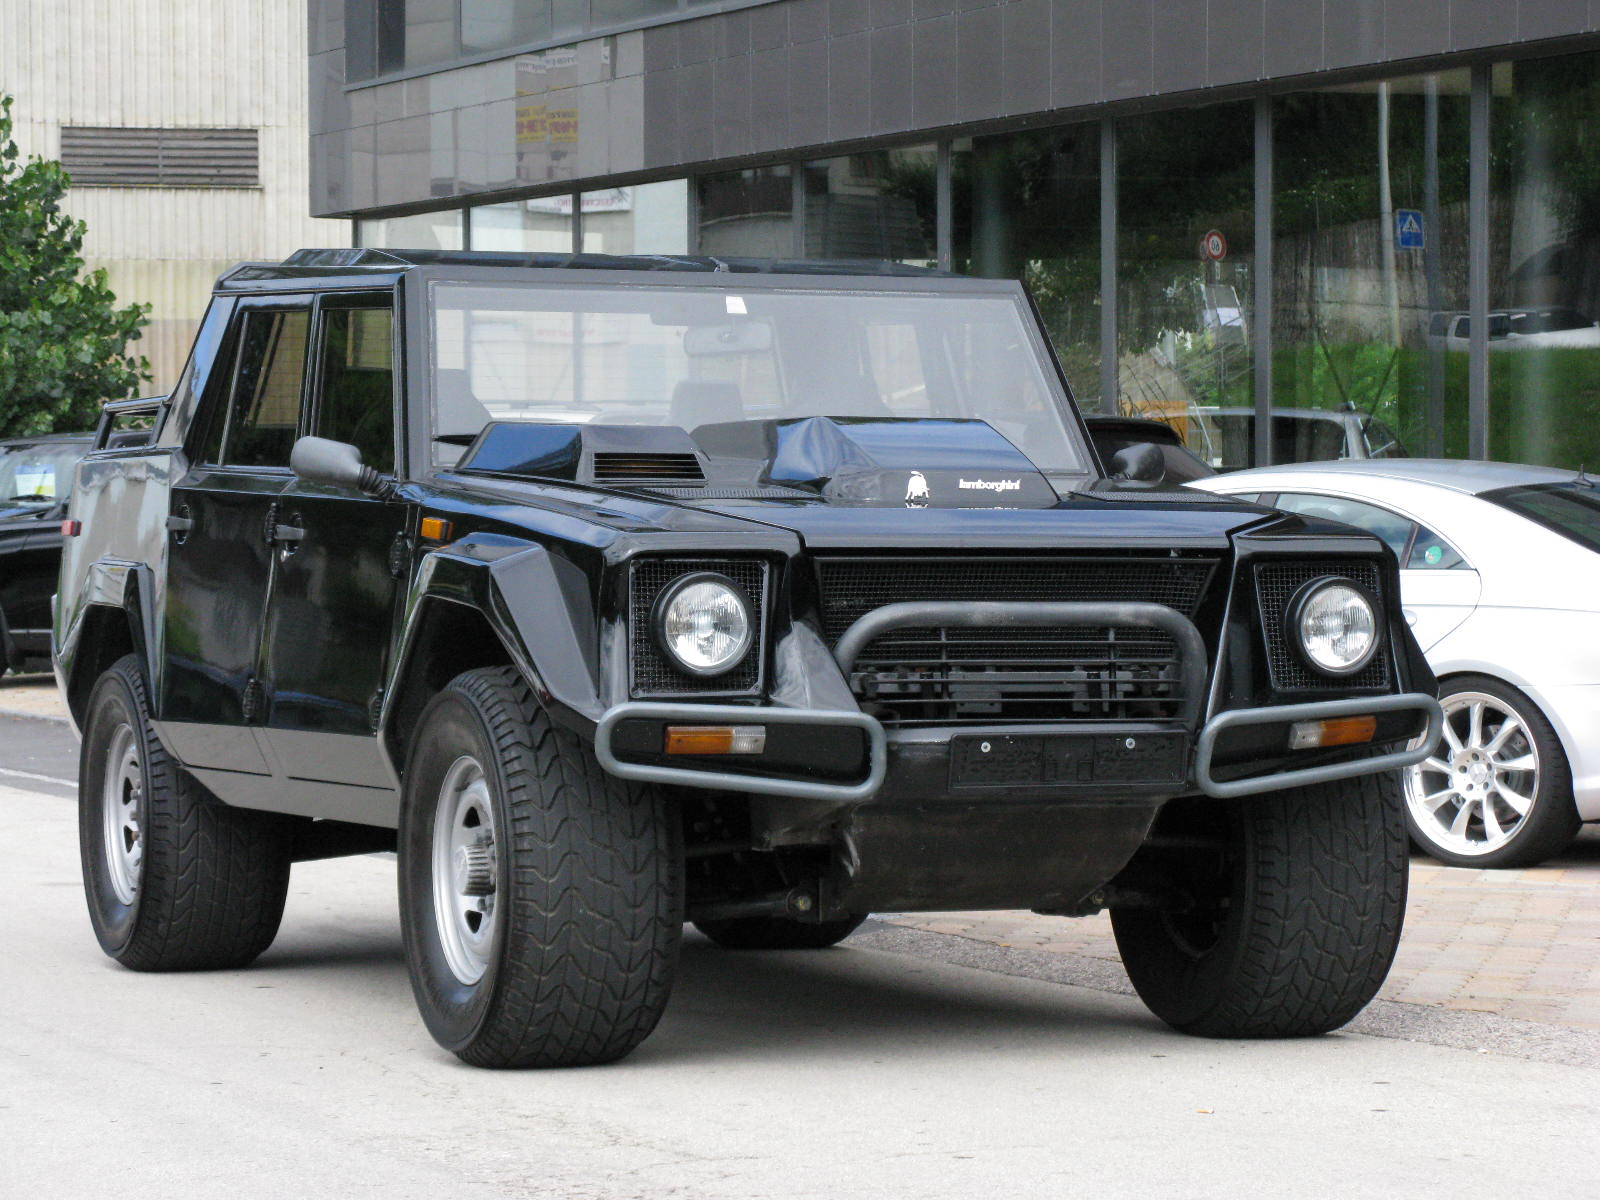 Lamborghini 4x4 Wed By Kez